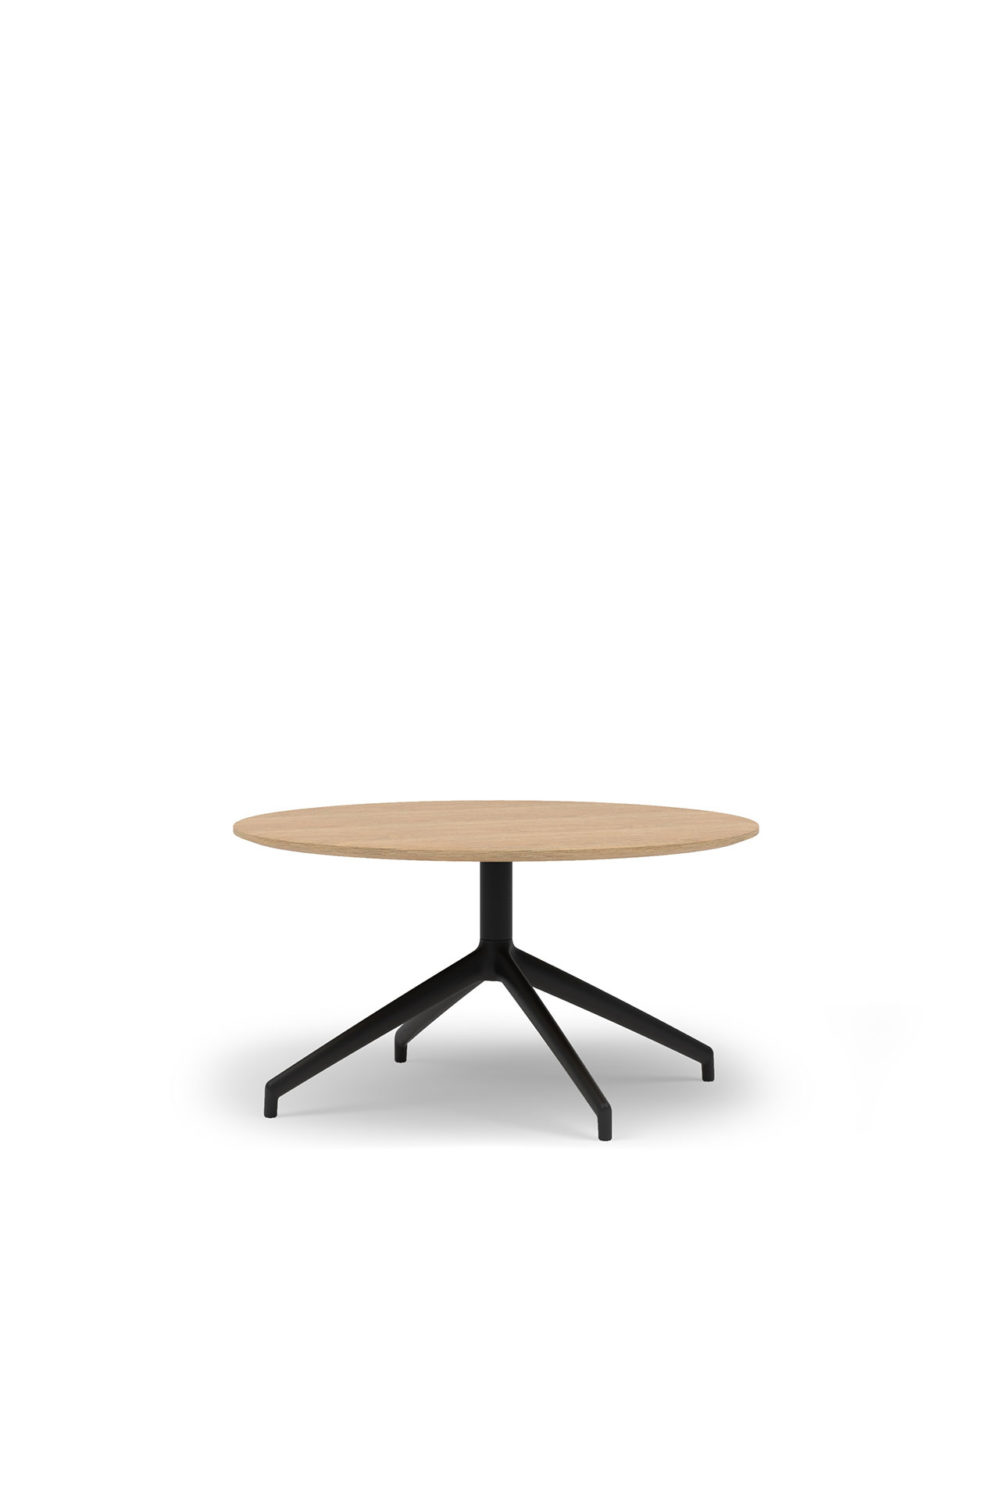 Hold Table By Jonathon Prestwich 1